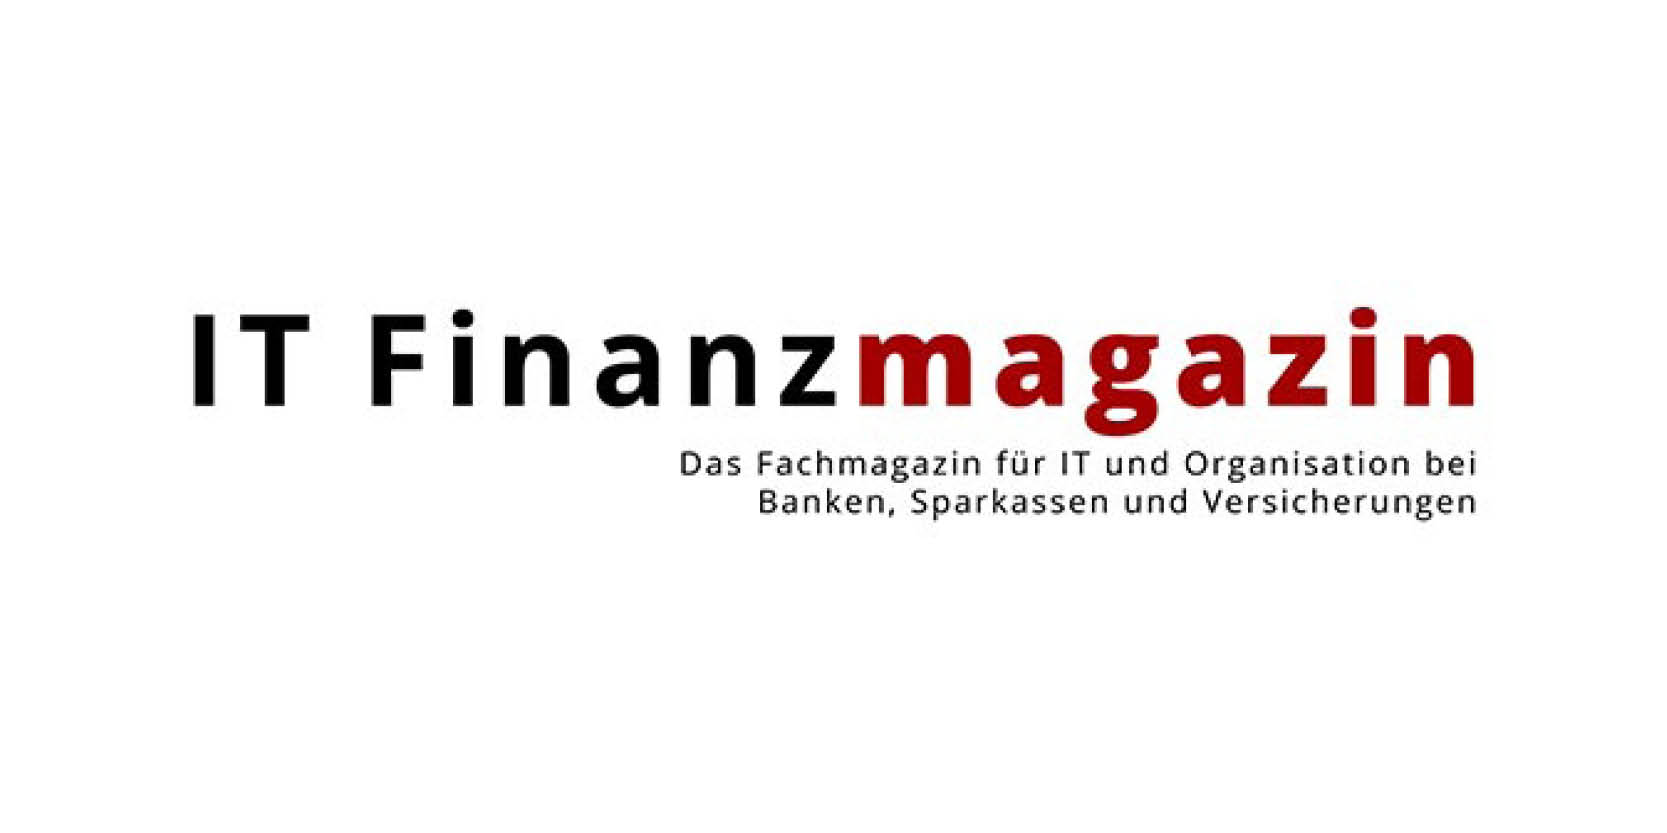 IT Finanzmagazin: Cyber Threats Every Financial Services Firm Should Know About